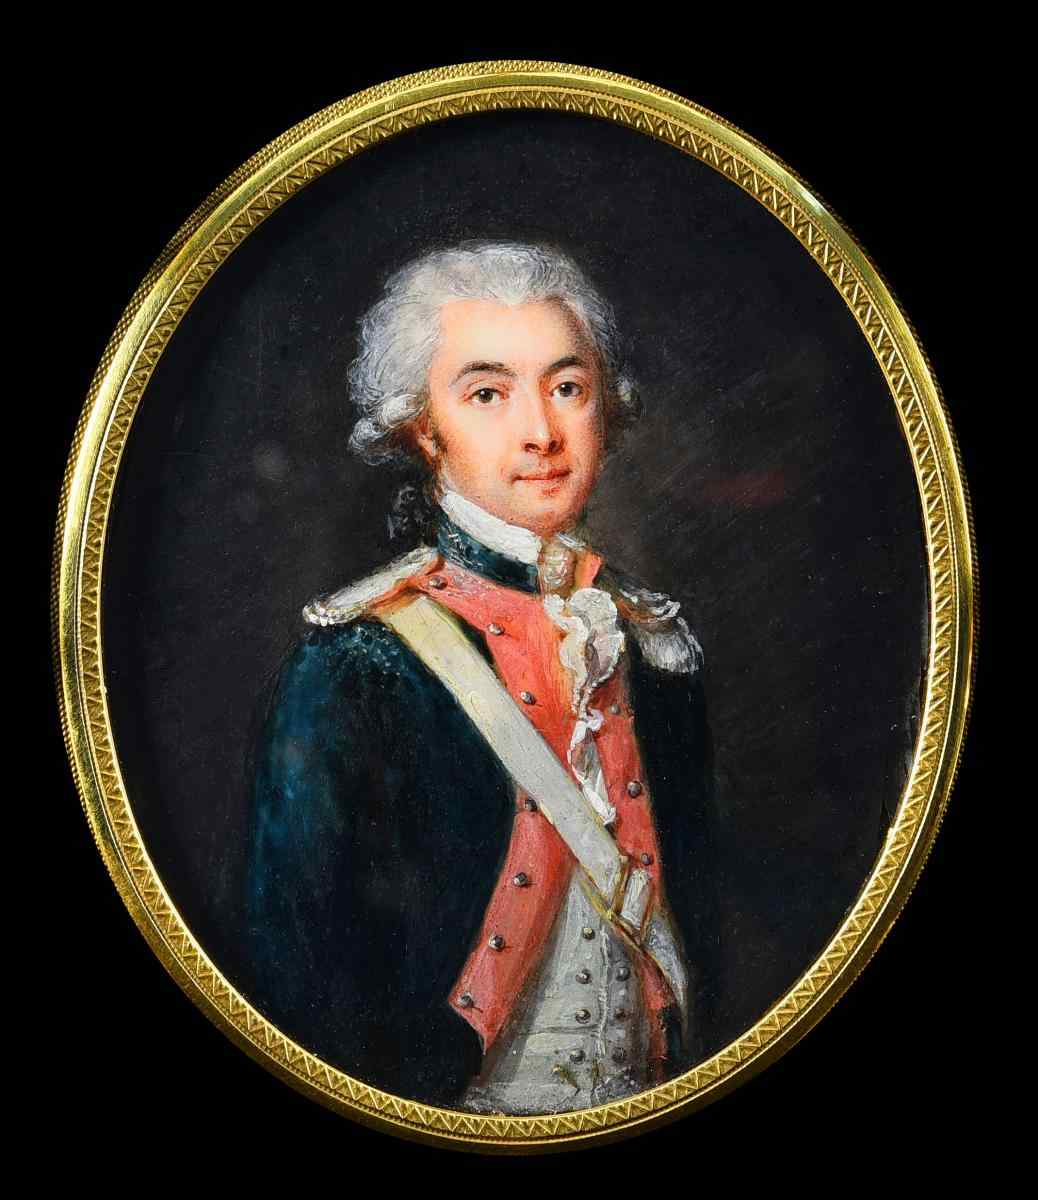 Joseph Tassy, Portrait of a Young Officer, miniature